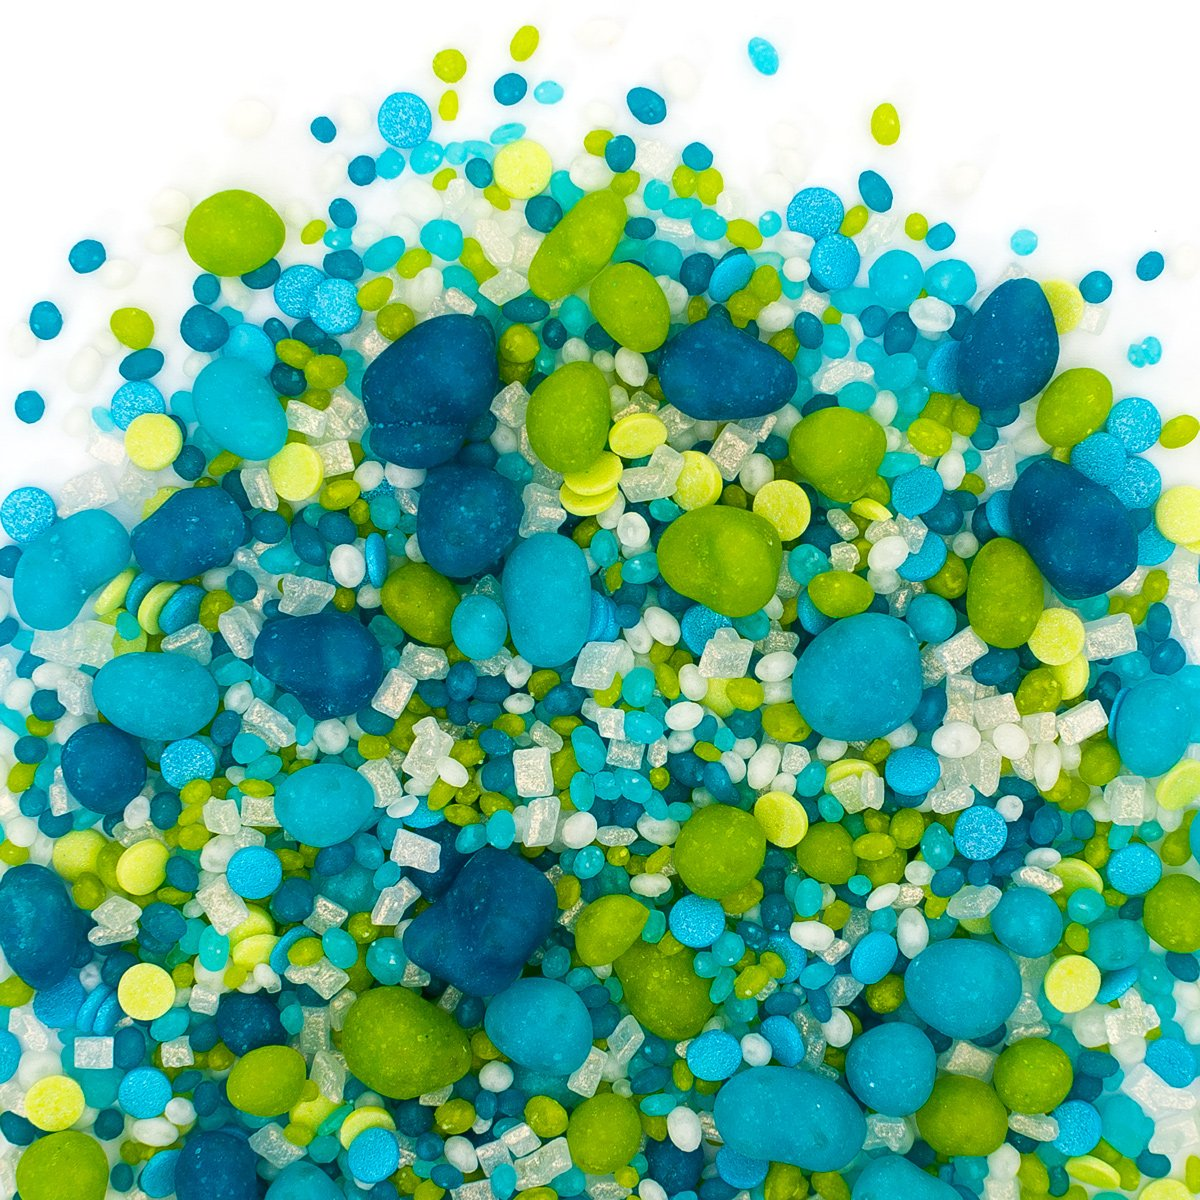 Candy Sprinkles | Under The Sea Candyfetti | 8oz Jar | Green and Blue | MADE IN THE USA! | Edible Confetti by Sweets Indeed (Image #1)